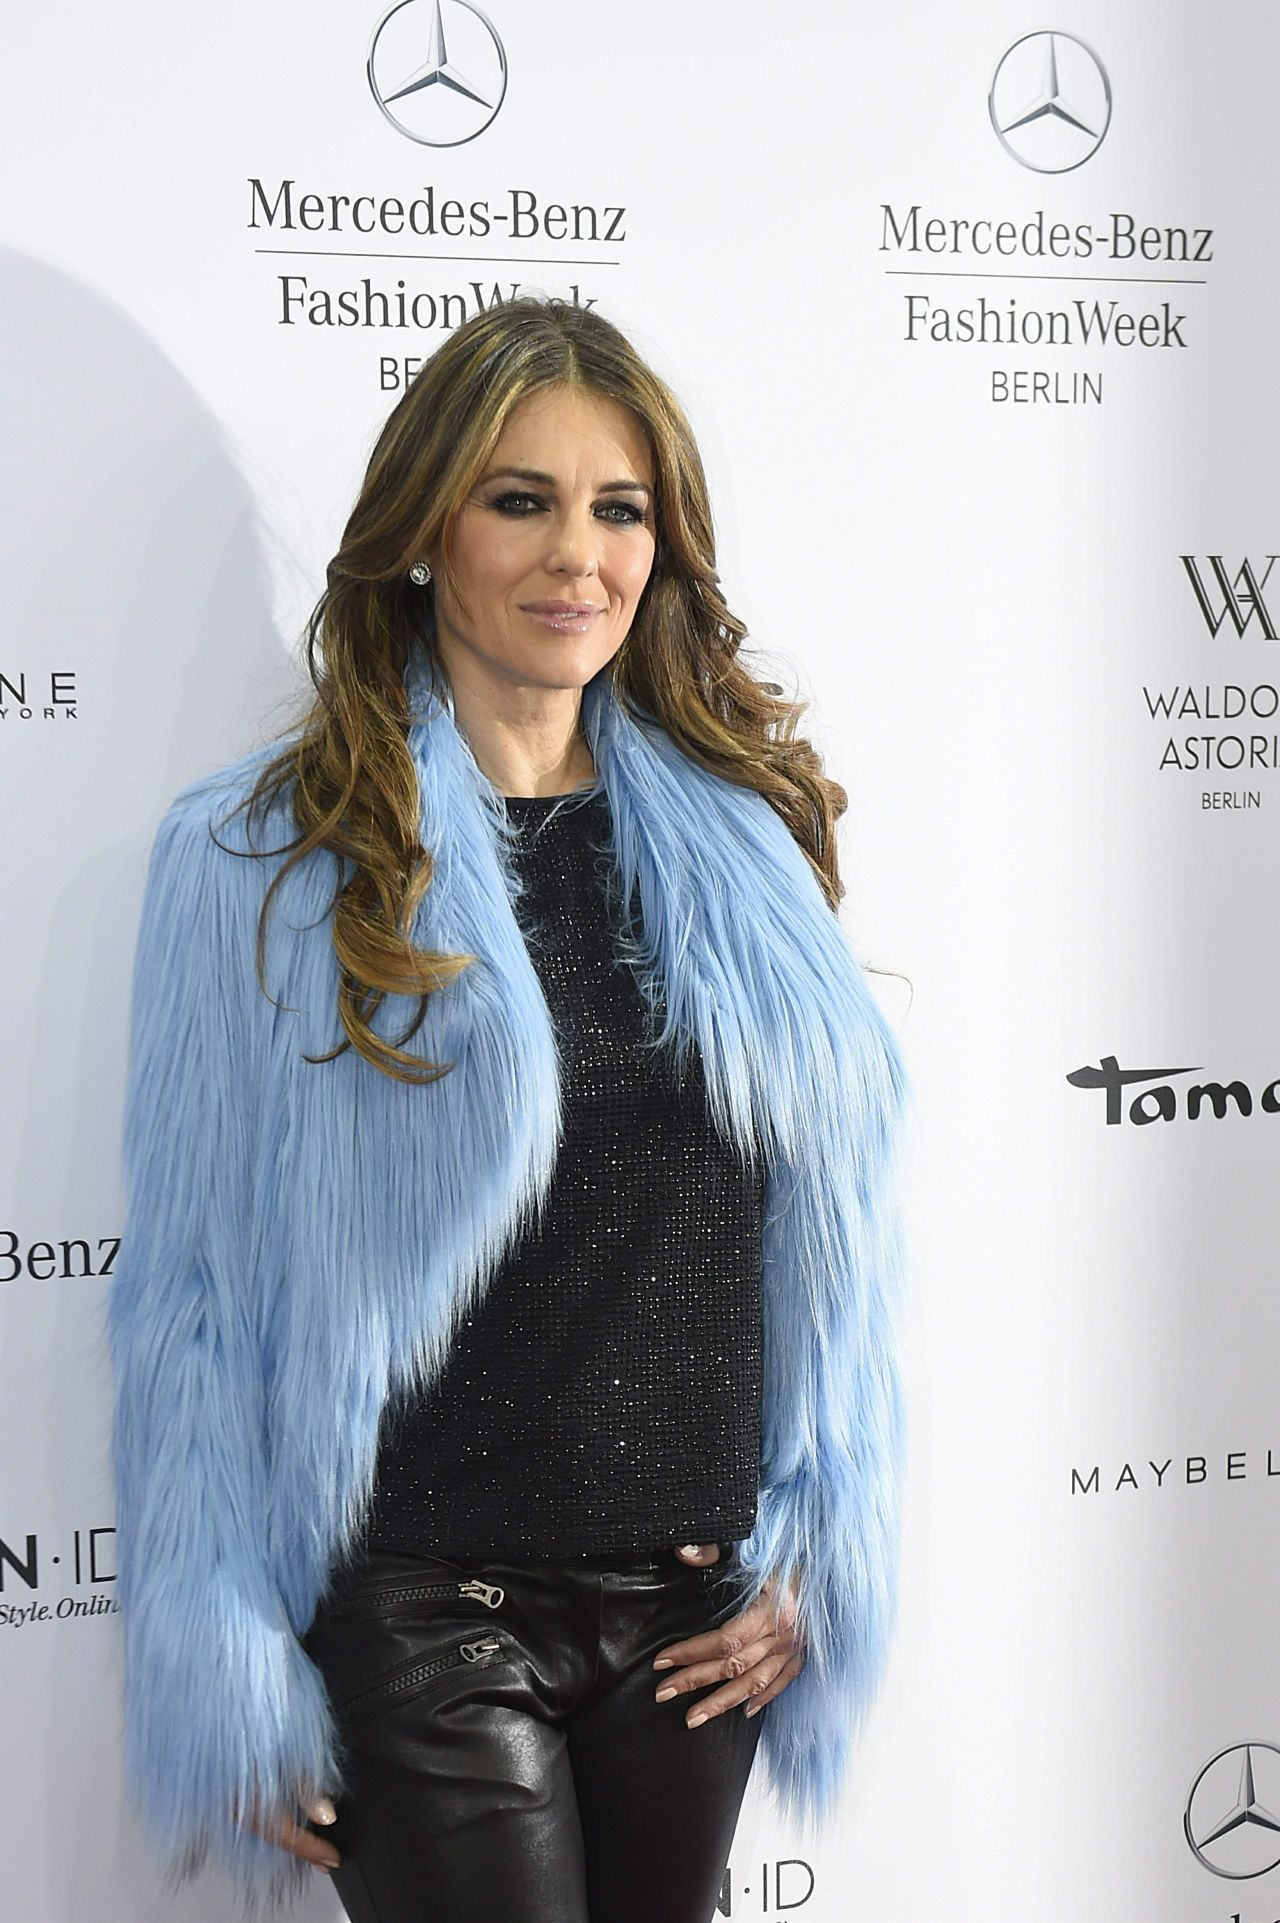 Elizabeth Hurley 2015 Celebrity Photos Style Marc Cain Show At The Mercedes Benz Fashion